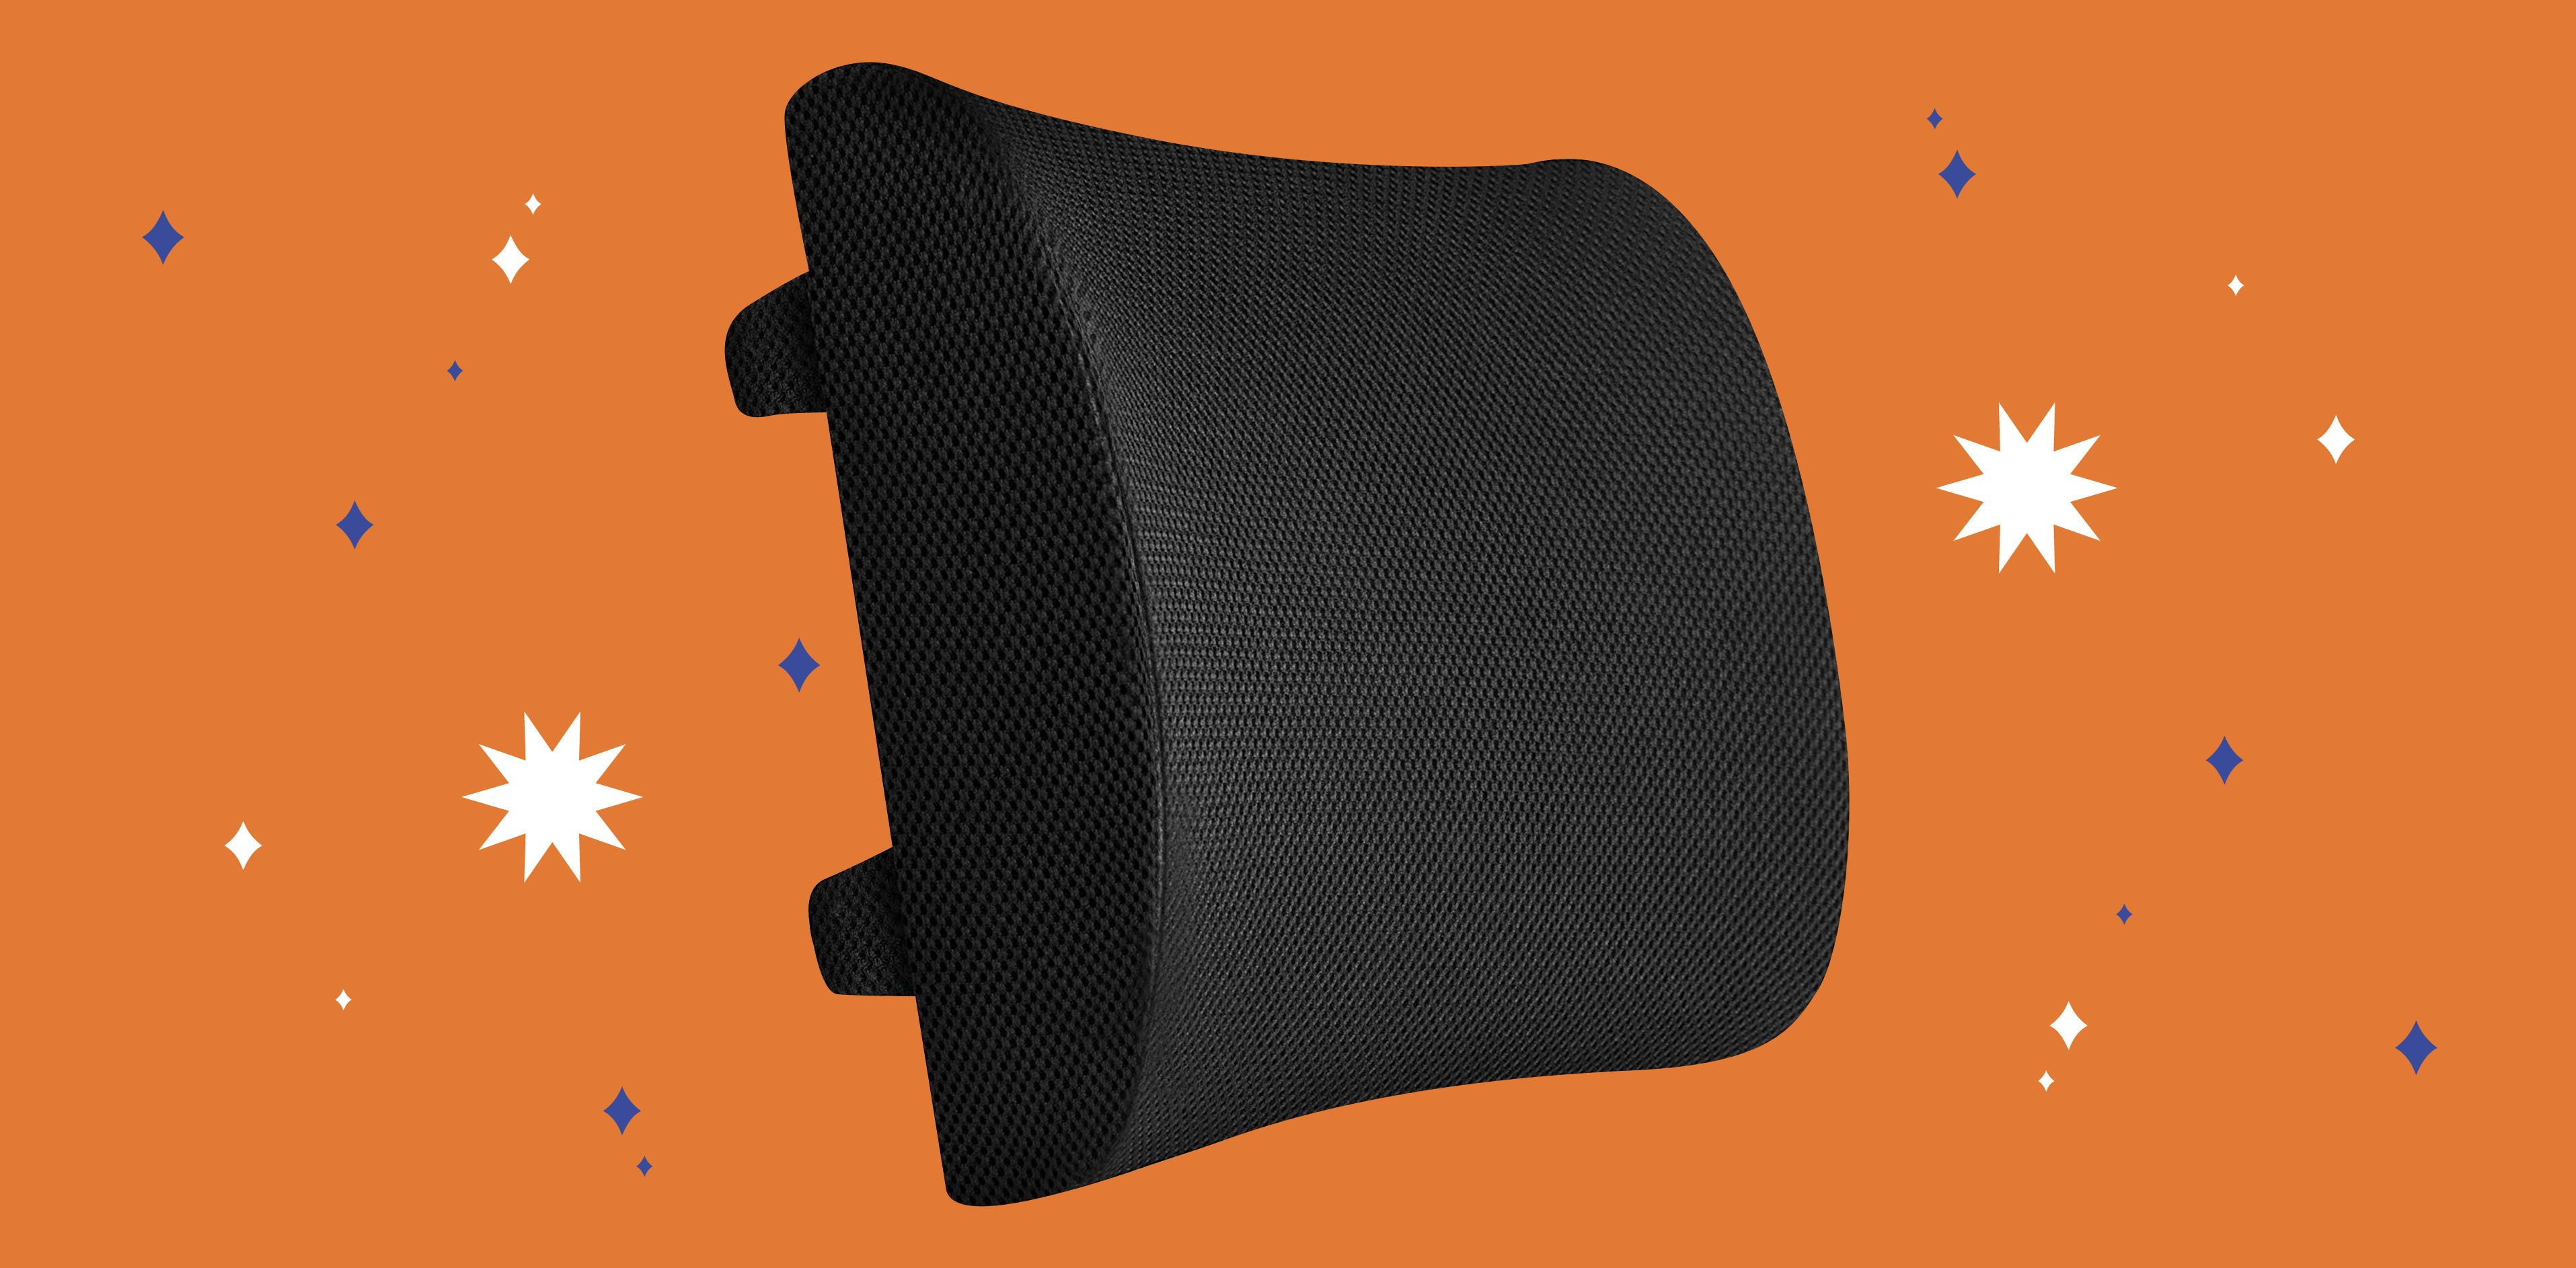 Lumbar Support Pillow For Chair The Best Lumbar Support Pillow For Your Office Chair Or Car